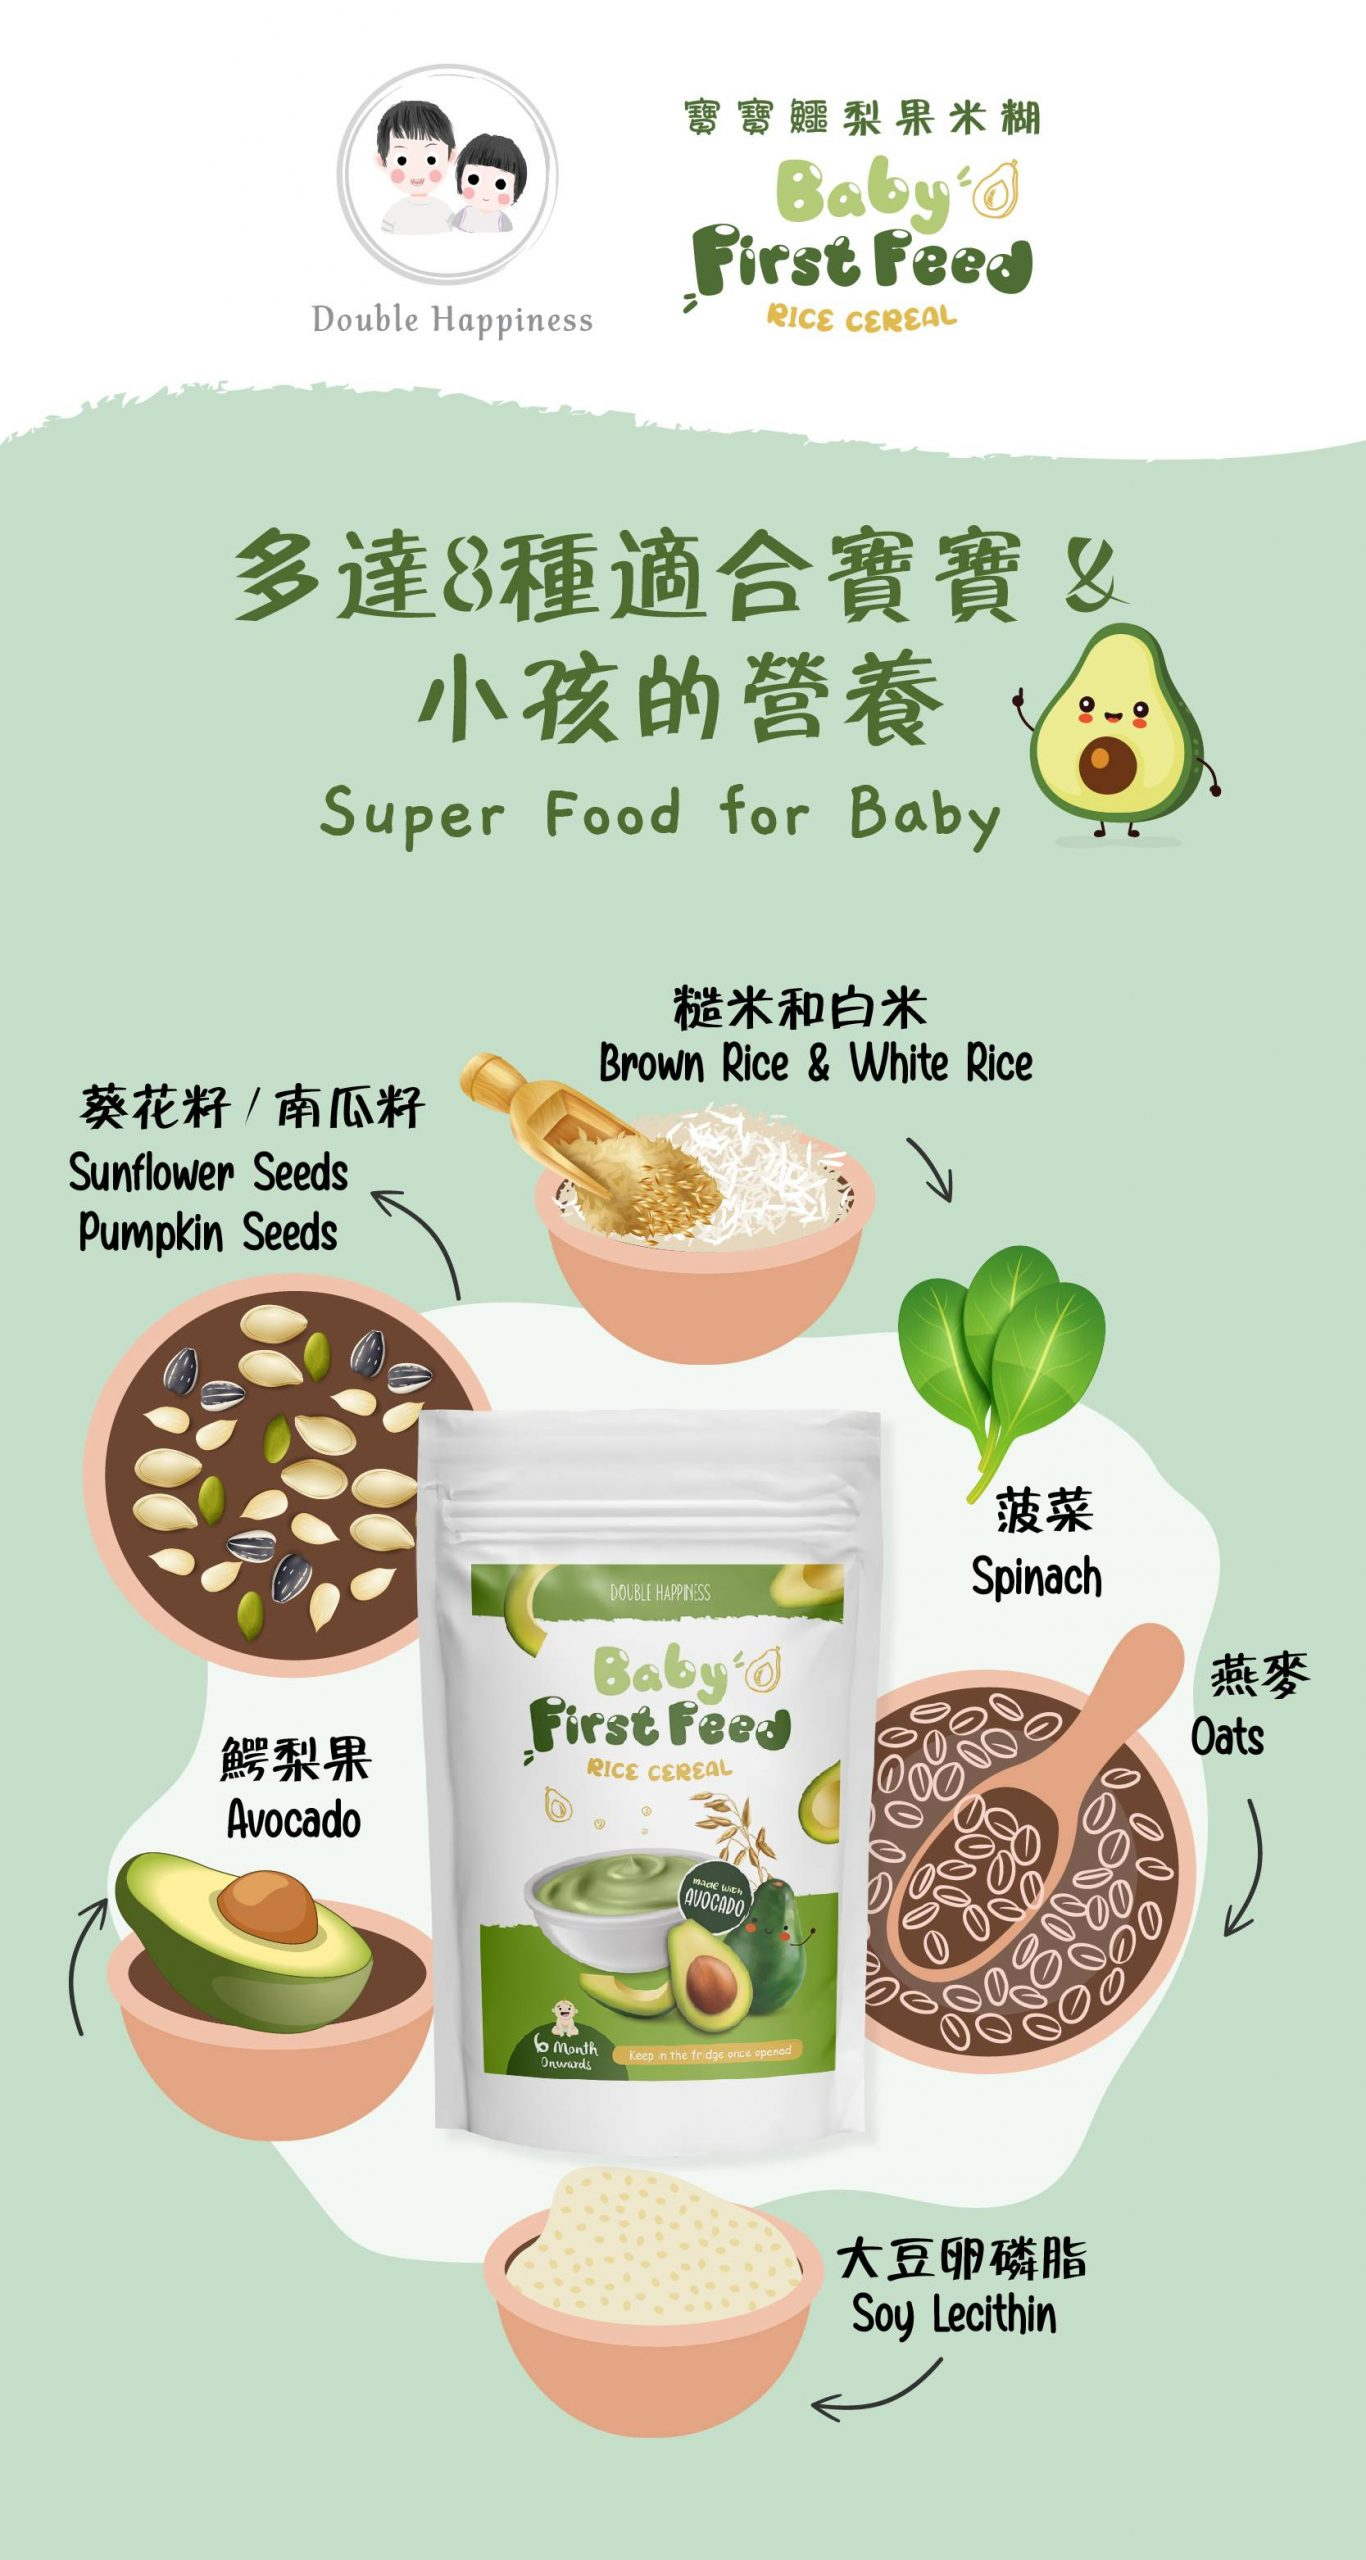 Avocado baby rice cereal